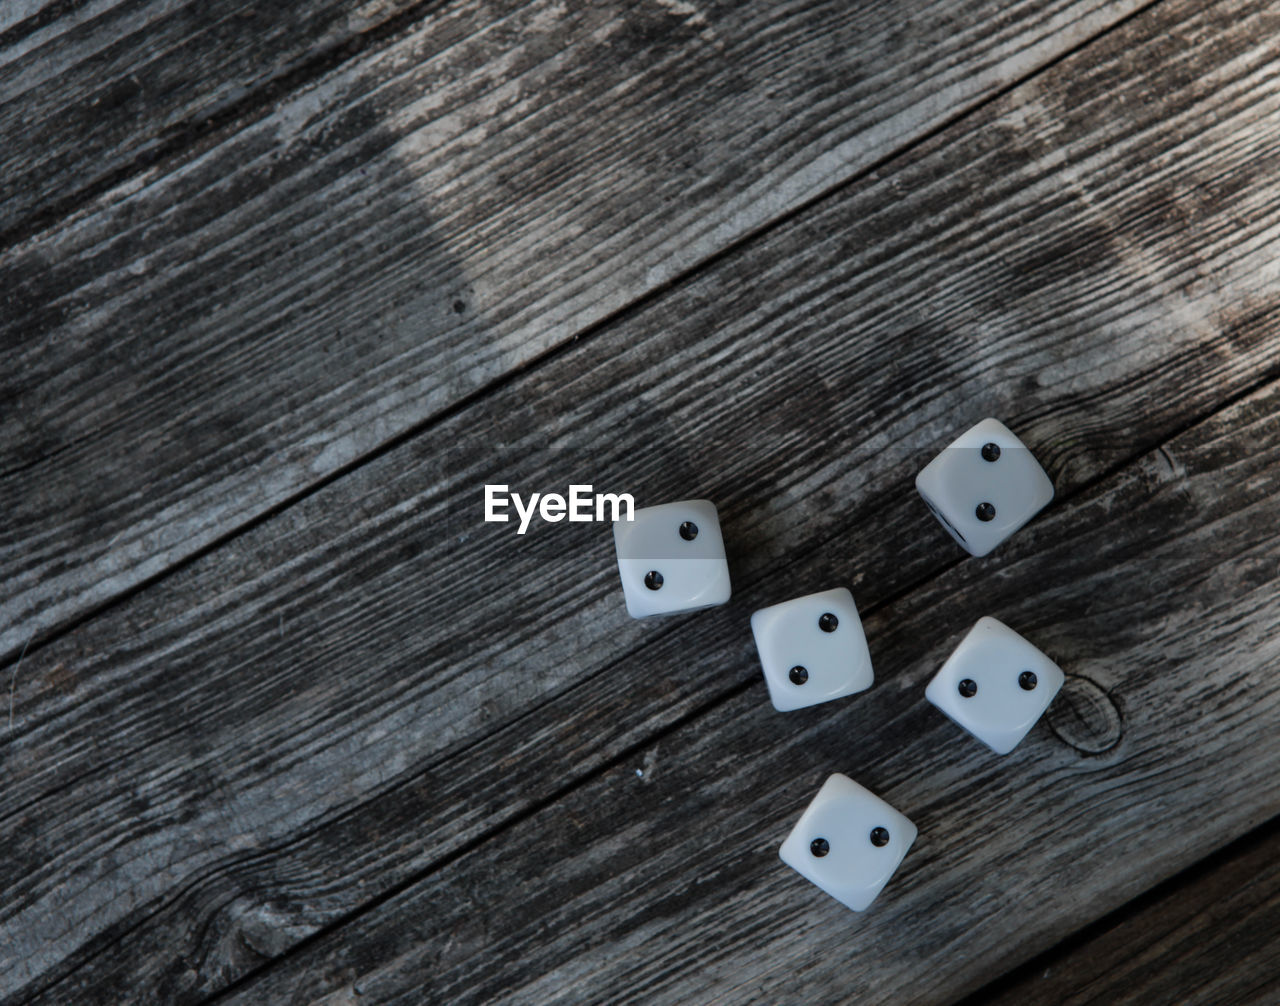 wood - material, table, indoors, still life, dice, high angle view, no people, arts culture and entertainment, opportunity, leisure games, luck, gambling, group of objects, close-up, pattern, textured, shape, directly above, cube shape, leisure activity